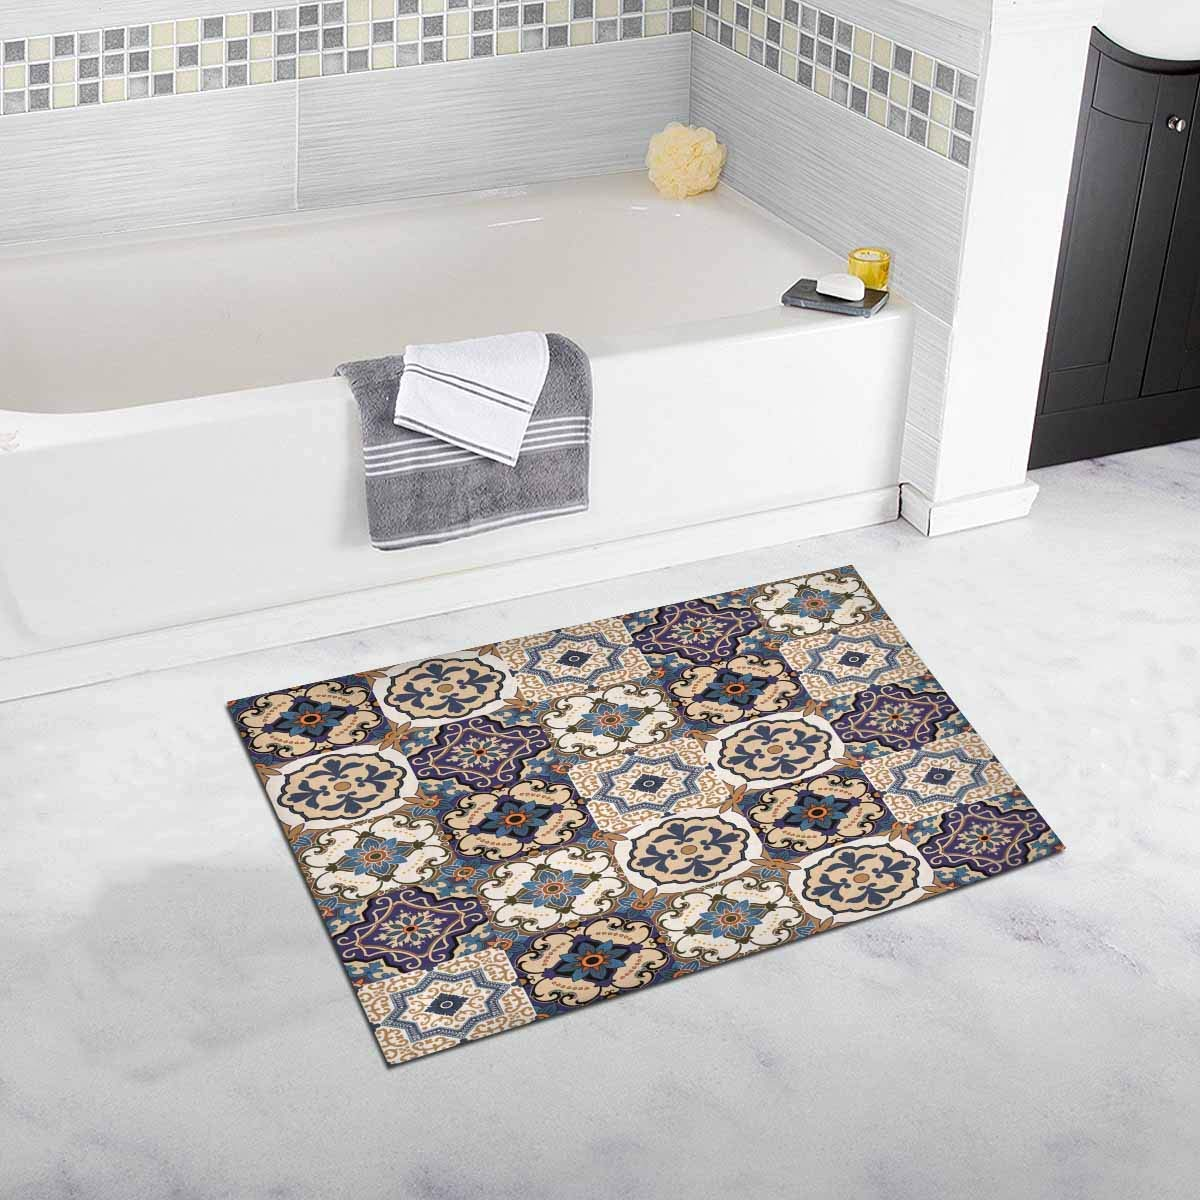 Gorgeous Patchwork Moroccan Tile Door Mats Kitchen Floor